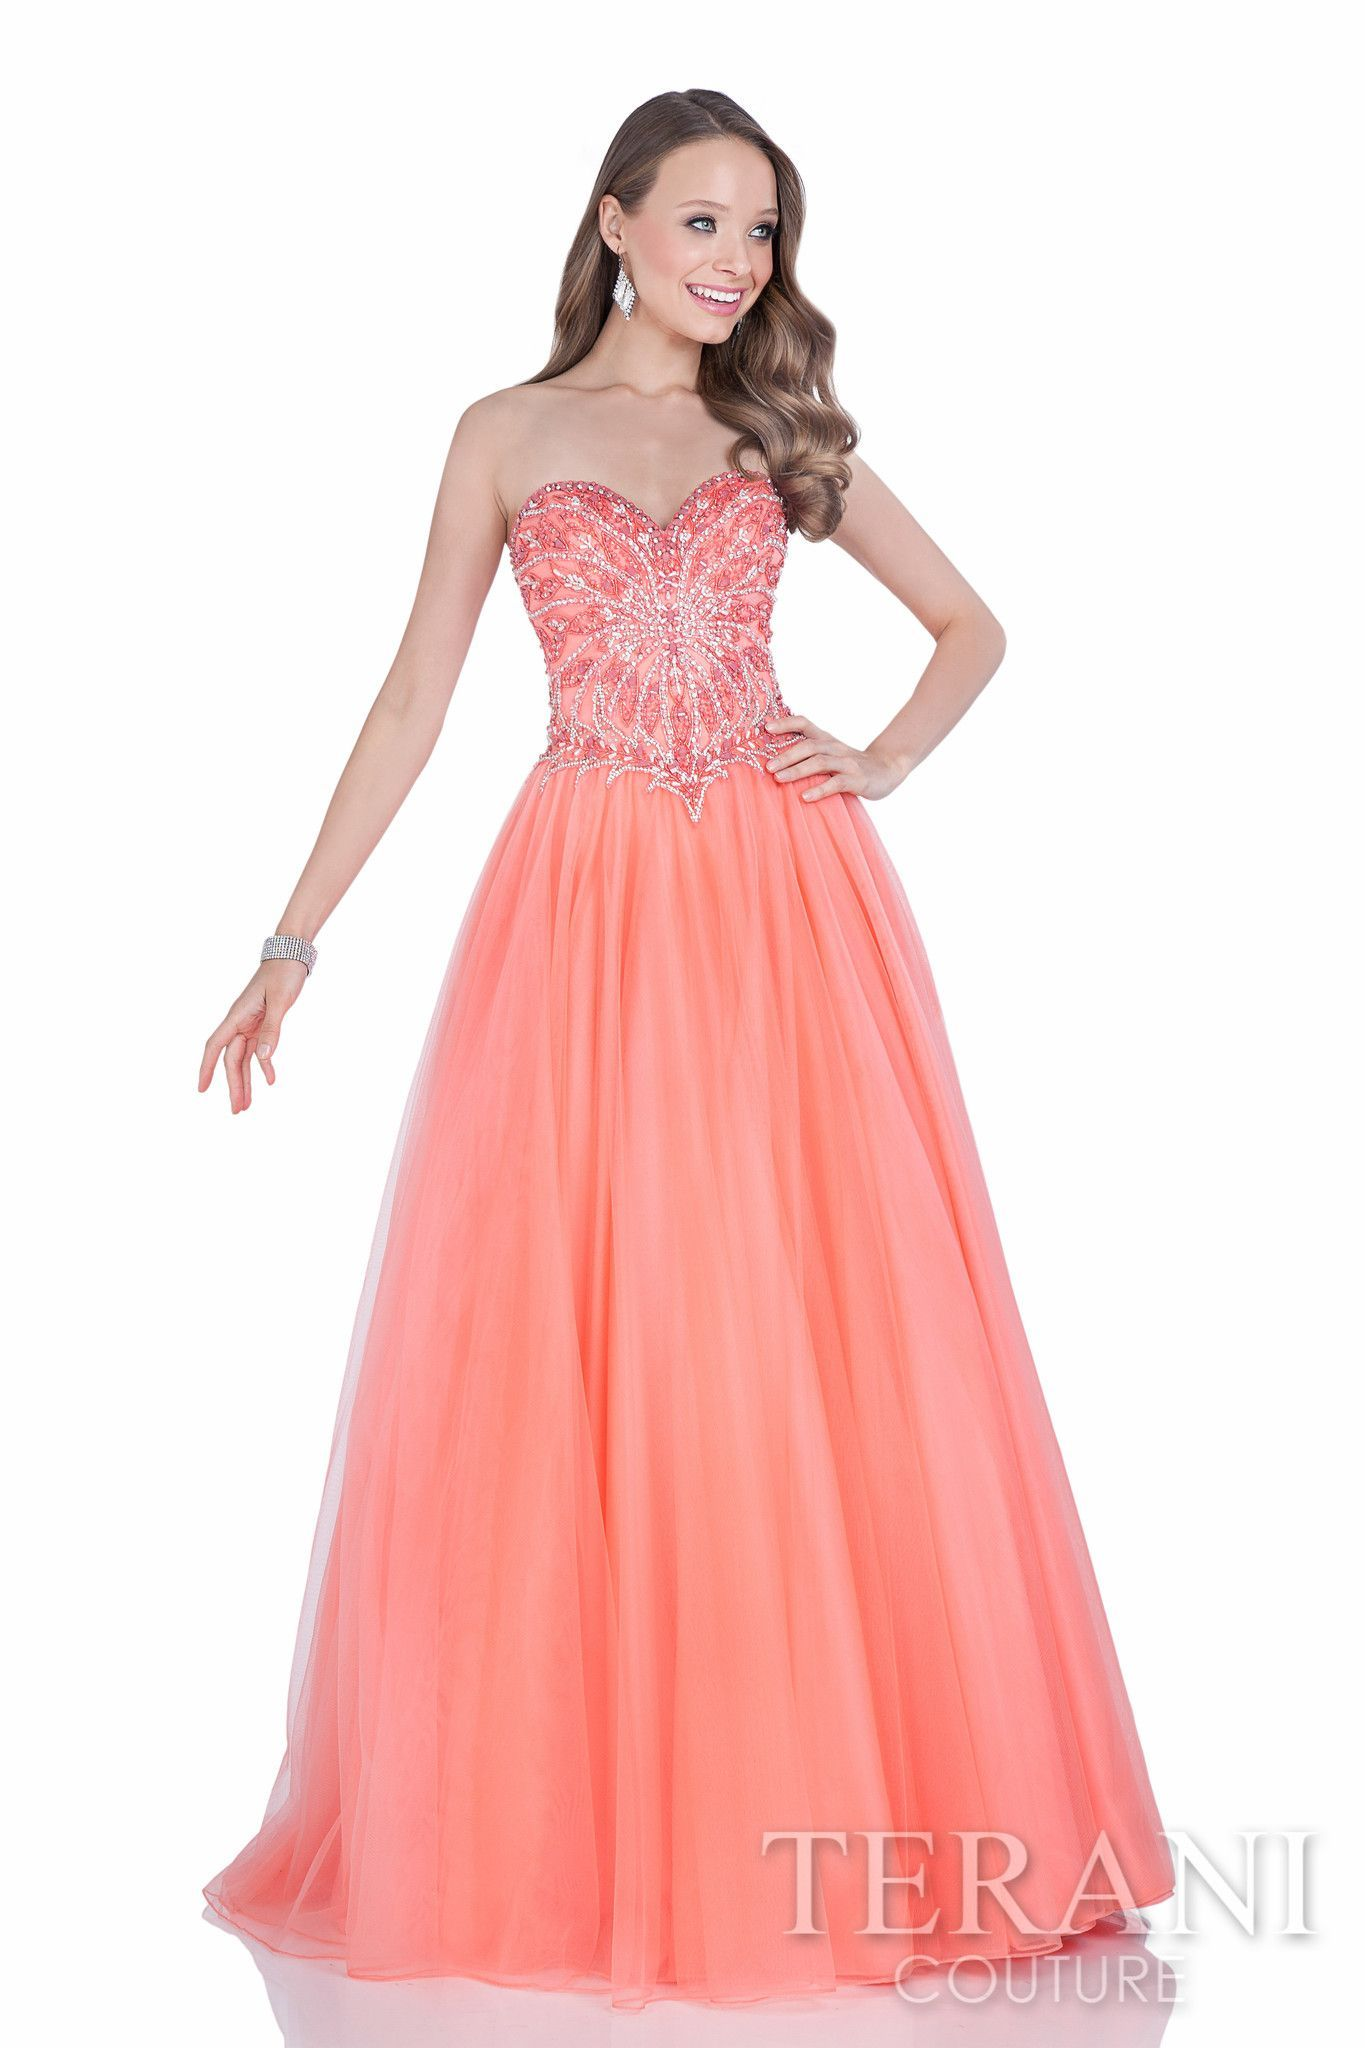 Terani couture p prom ideas pinterest couture prom